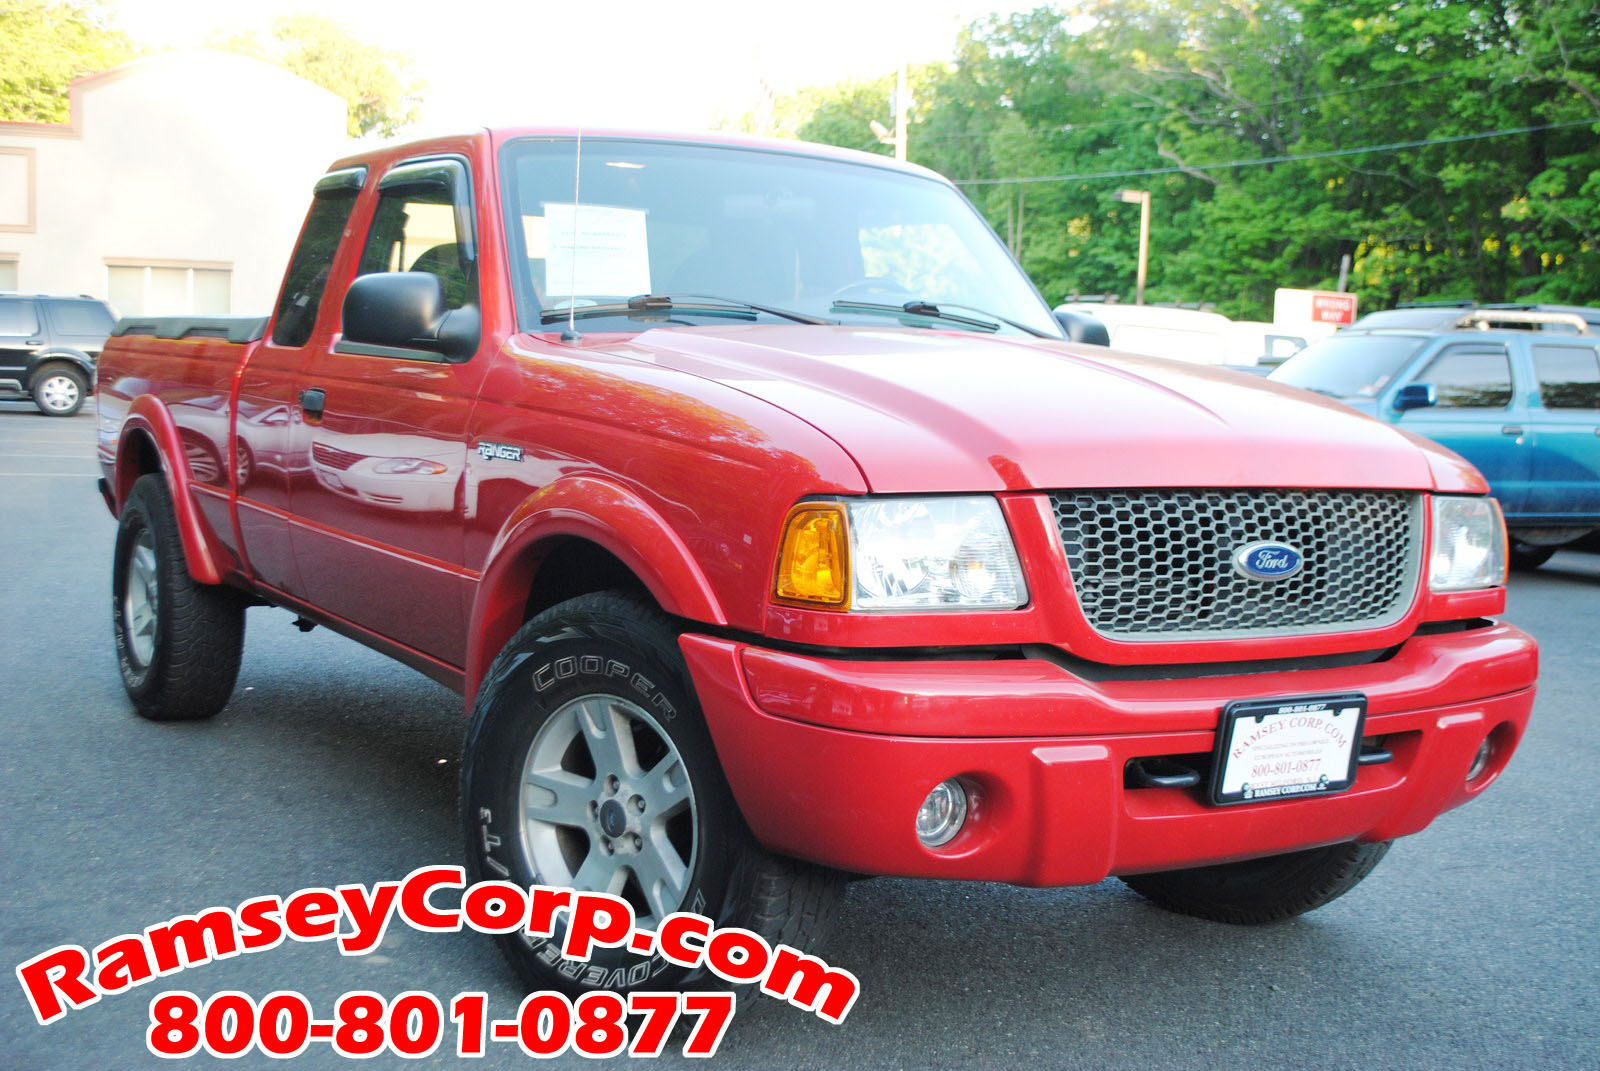 used 2002 ford ranger for sale west milford nj. Black Bedroom Furniture Sets. Home Design Ideas